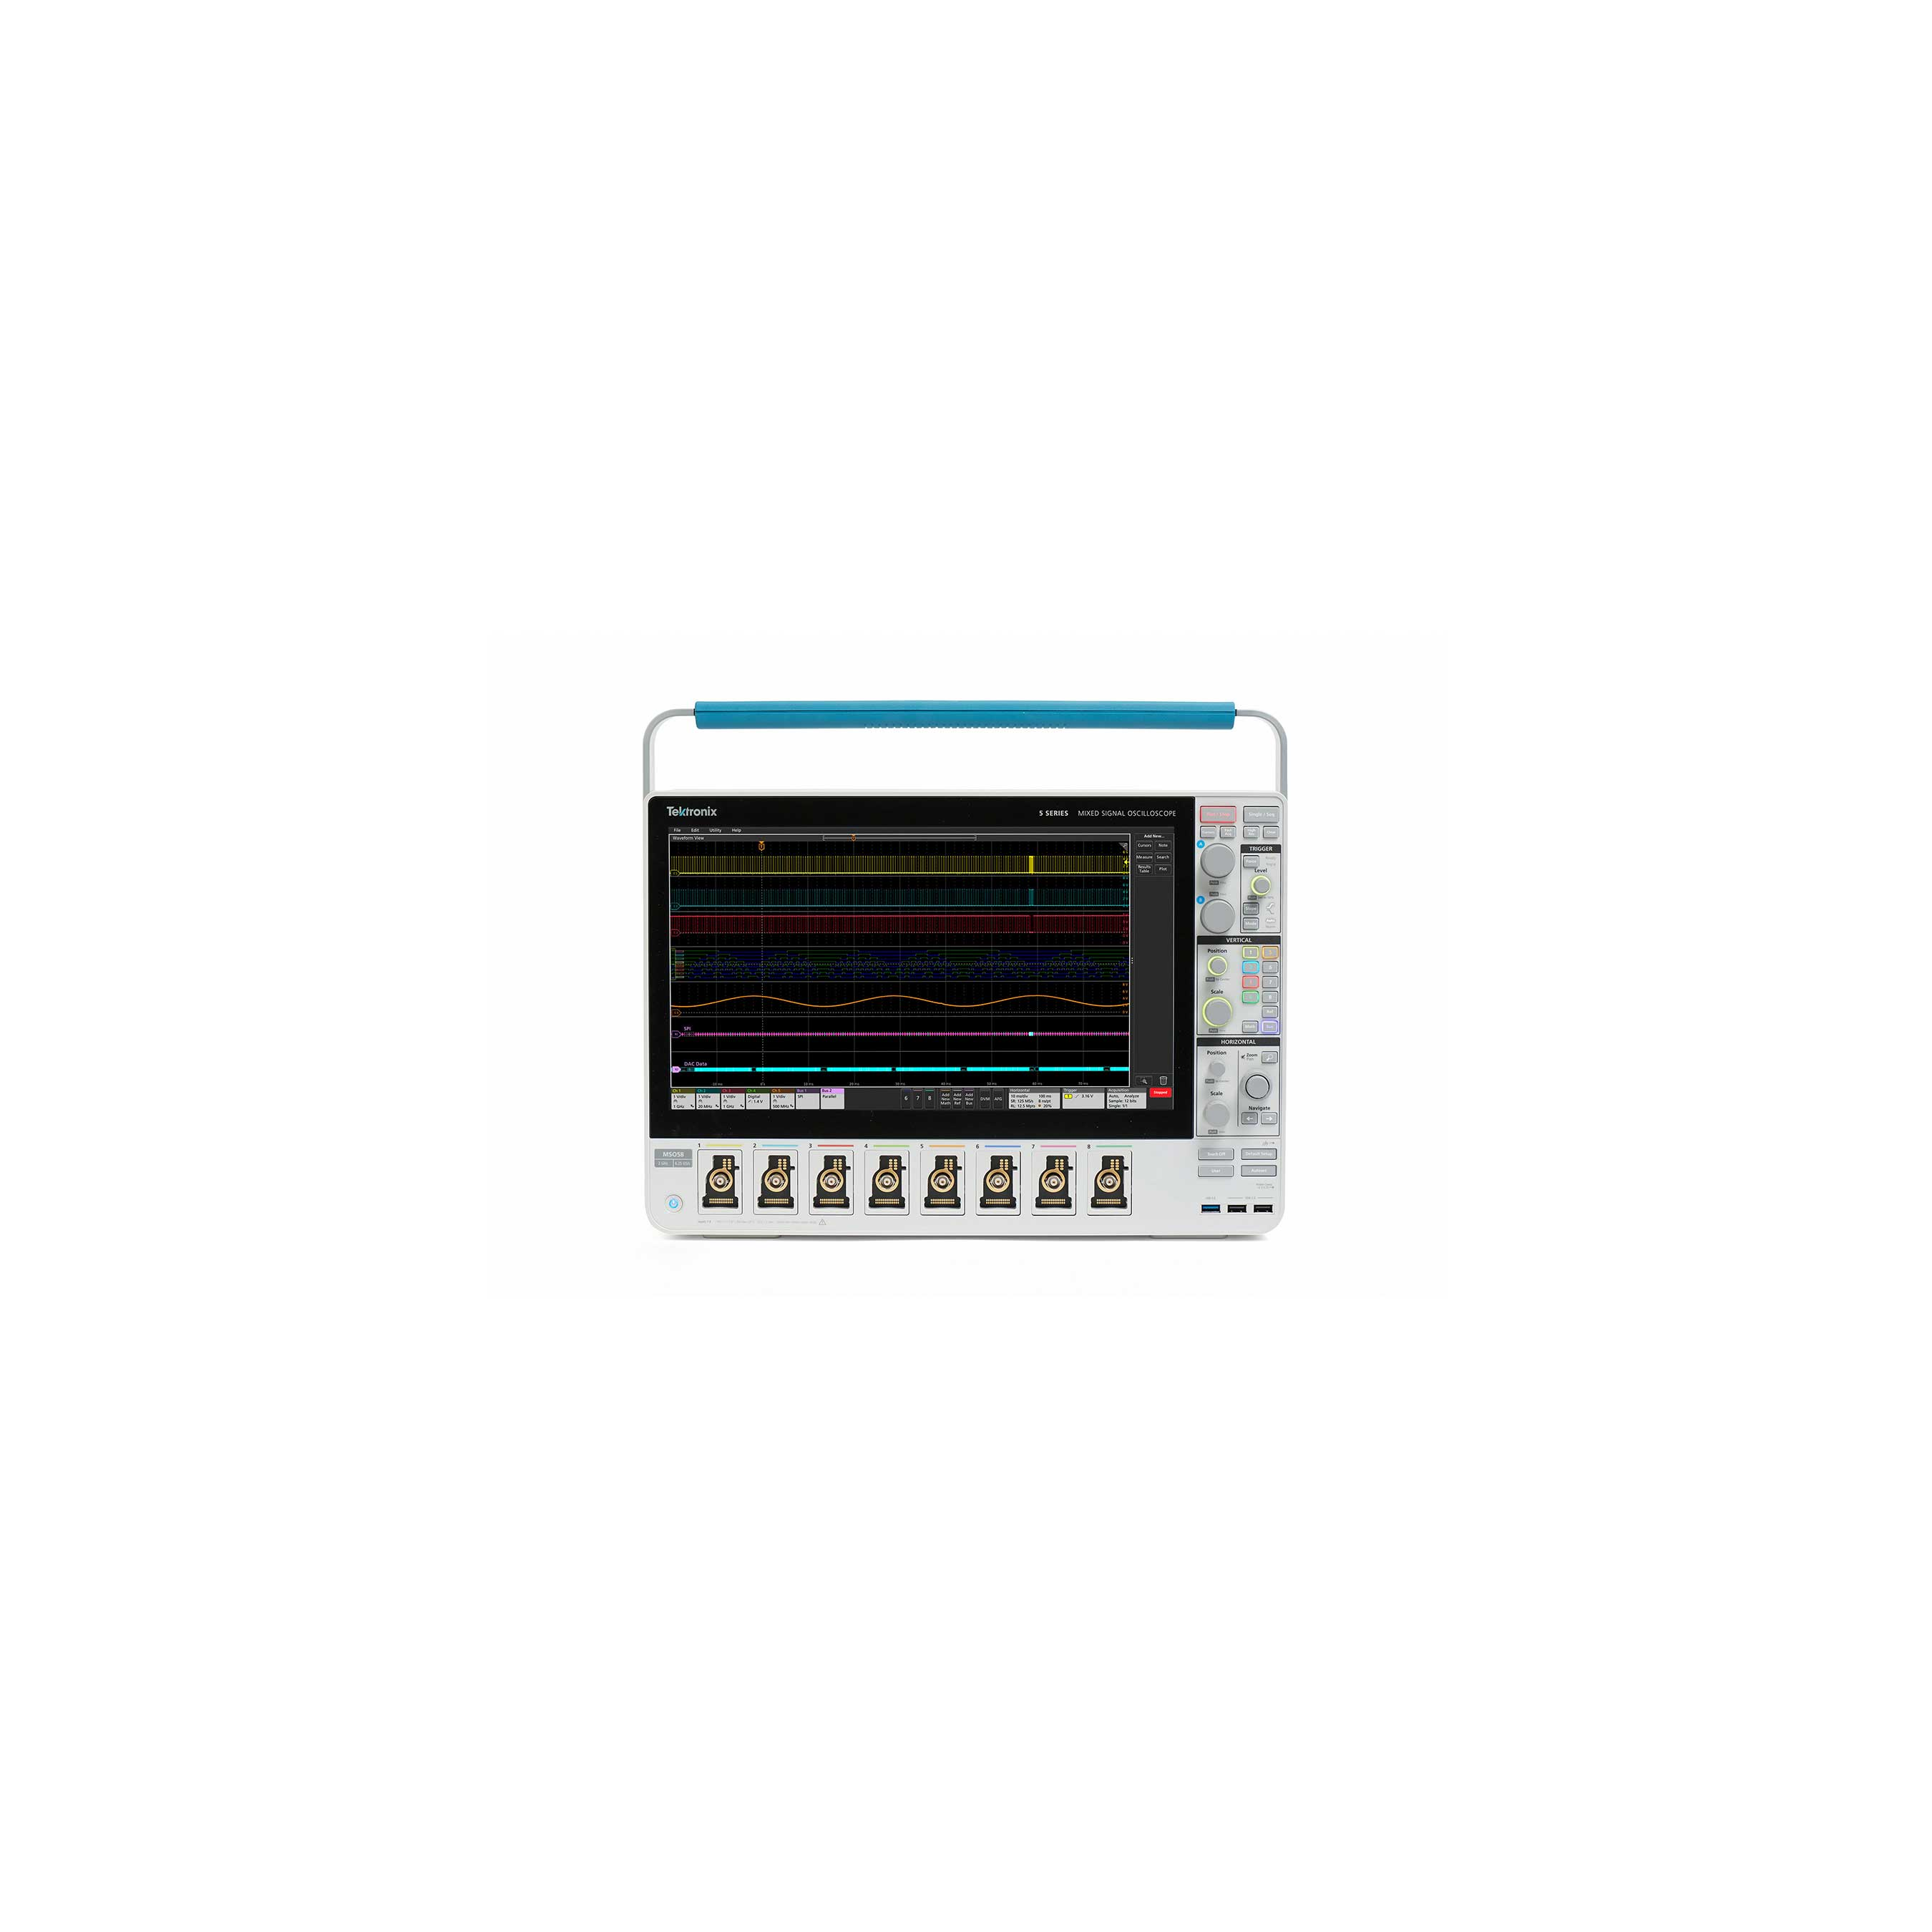 5 Series MSO redefines the midrange oscilloscope with a host of innovations delivering unprecedented flexibility and unmatched visibility into complex embedded systems.